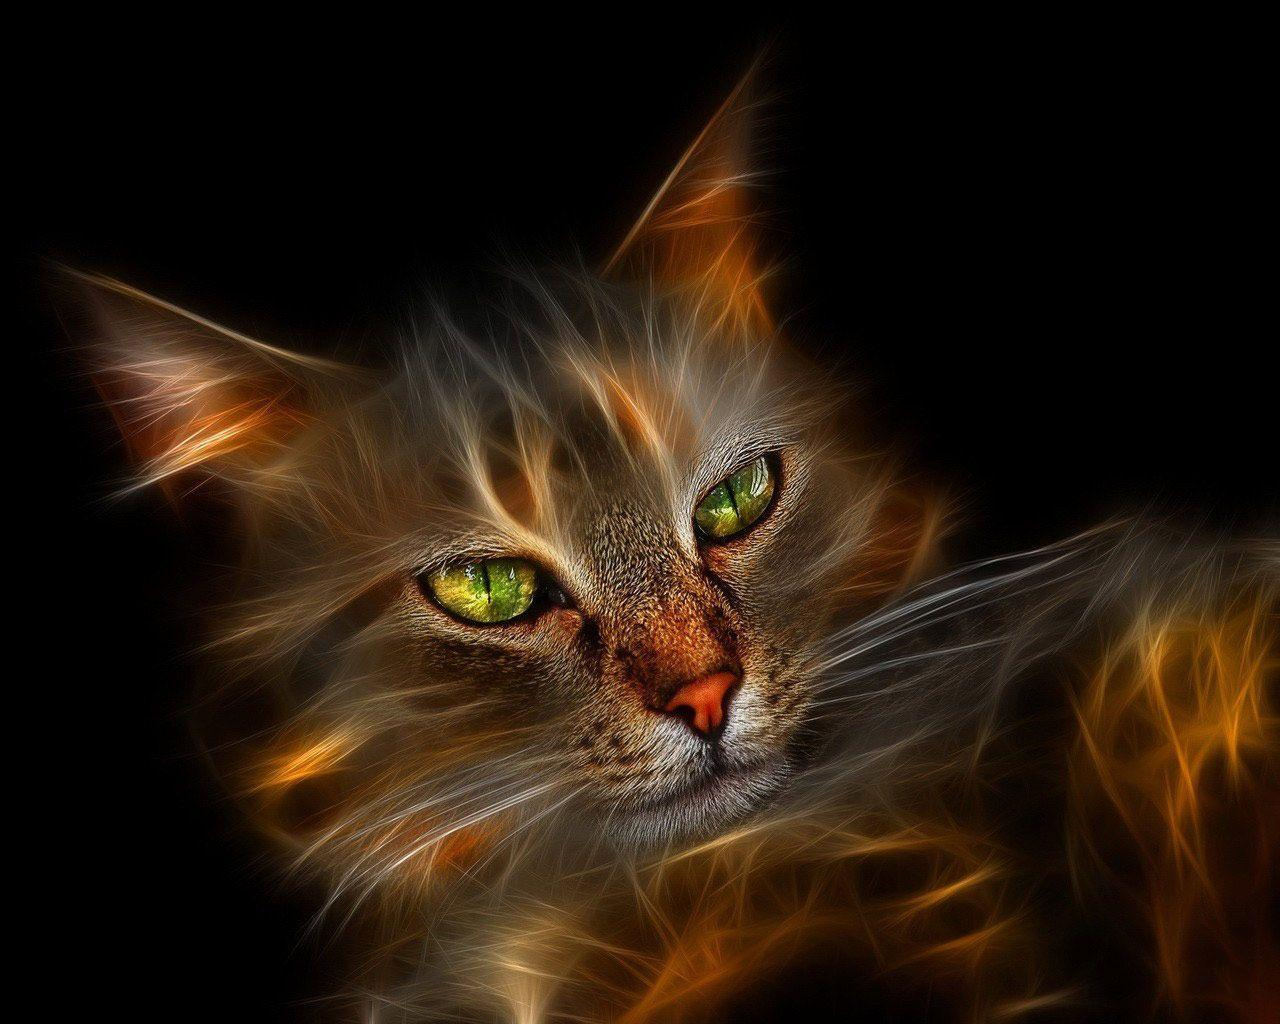 Desktop Wallpapers · Gallery · Windows 7 · Windows 7 Wallpapers Cat